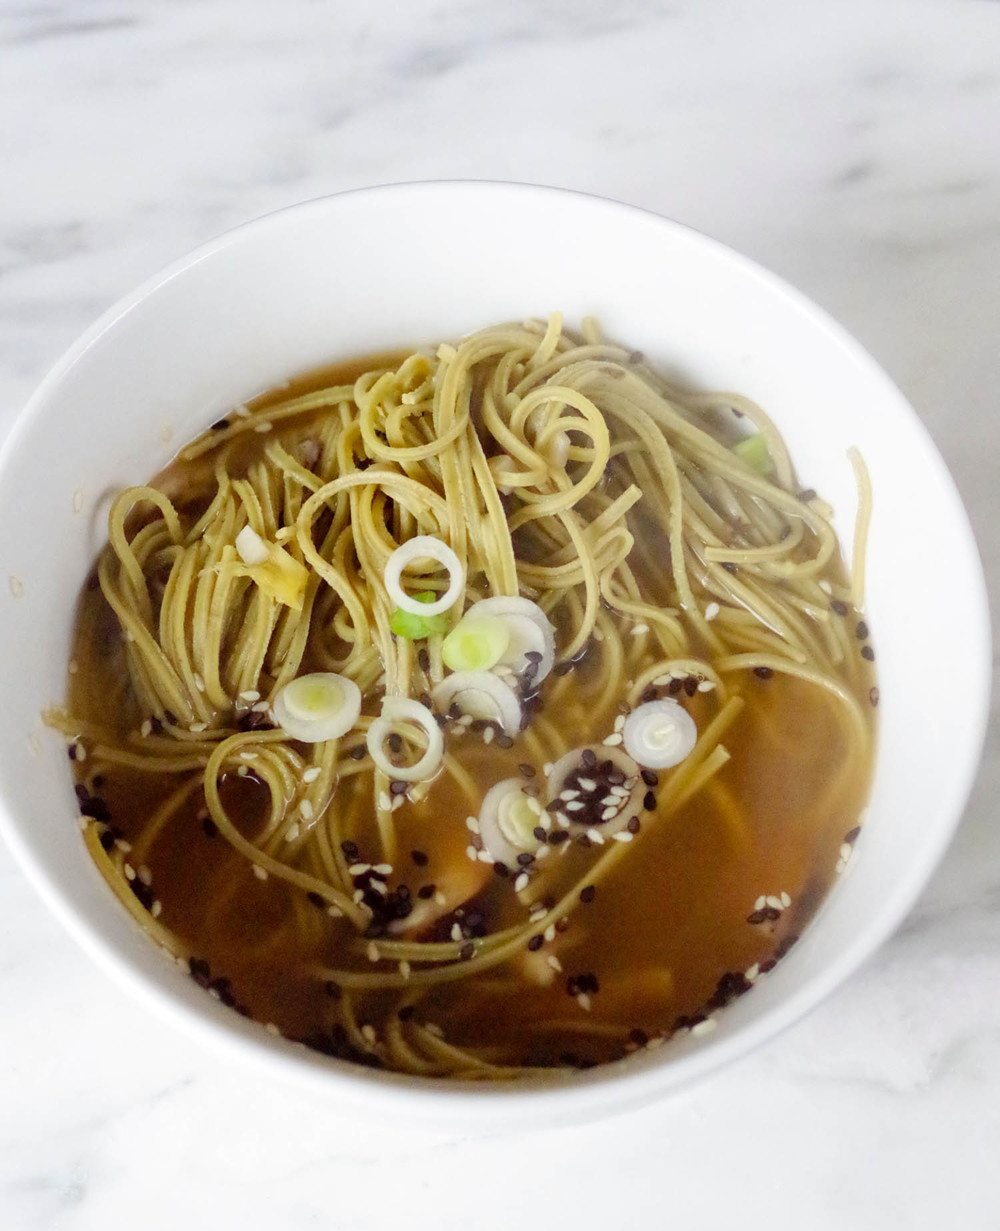 Homemade Ramen from Beautiful Ingredient - easy, vegetarian recipes in under 30 minutes.